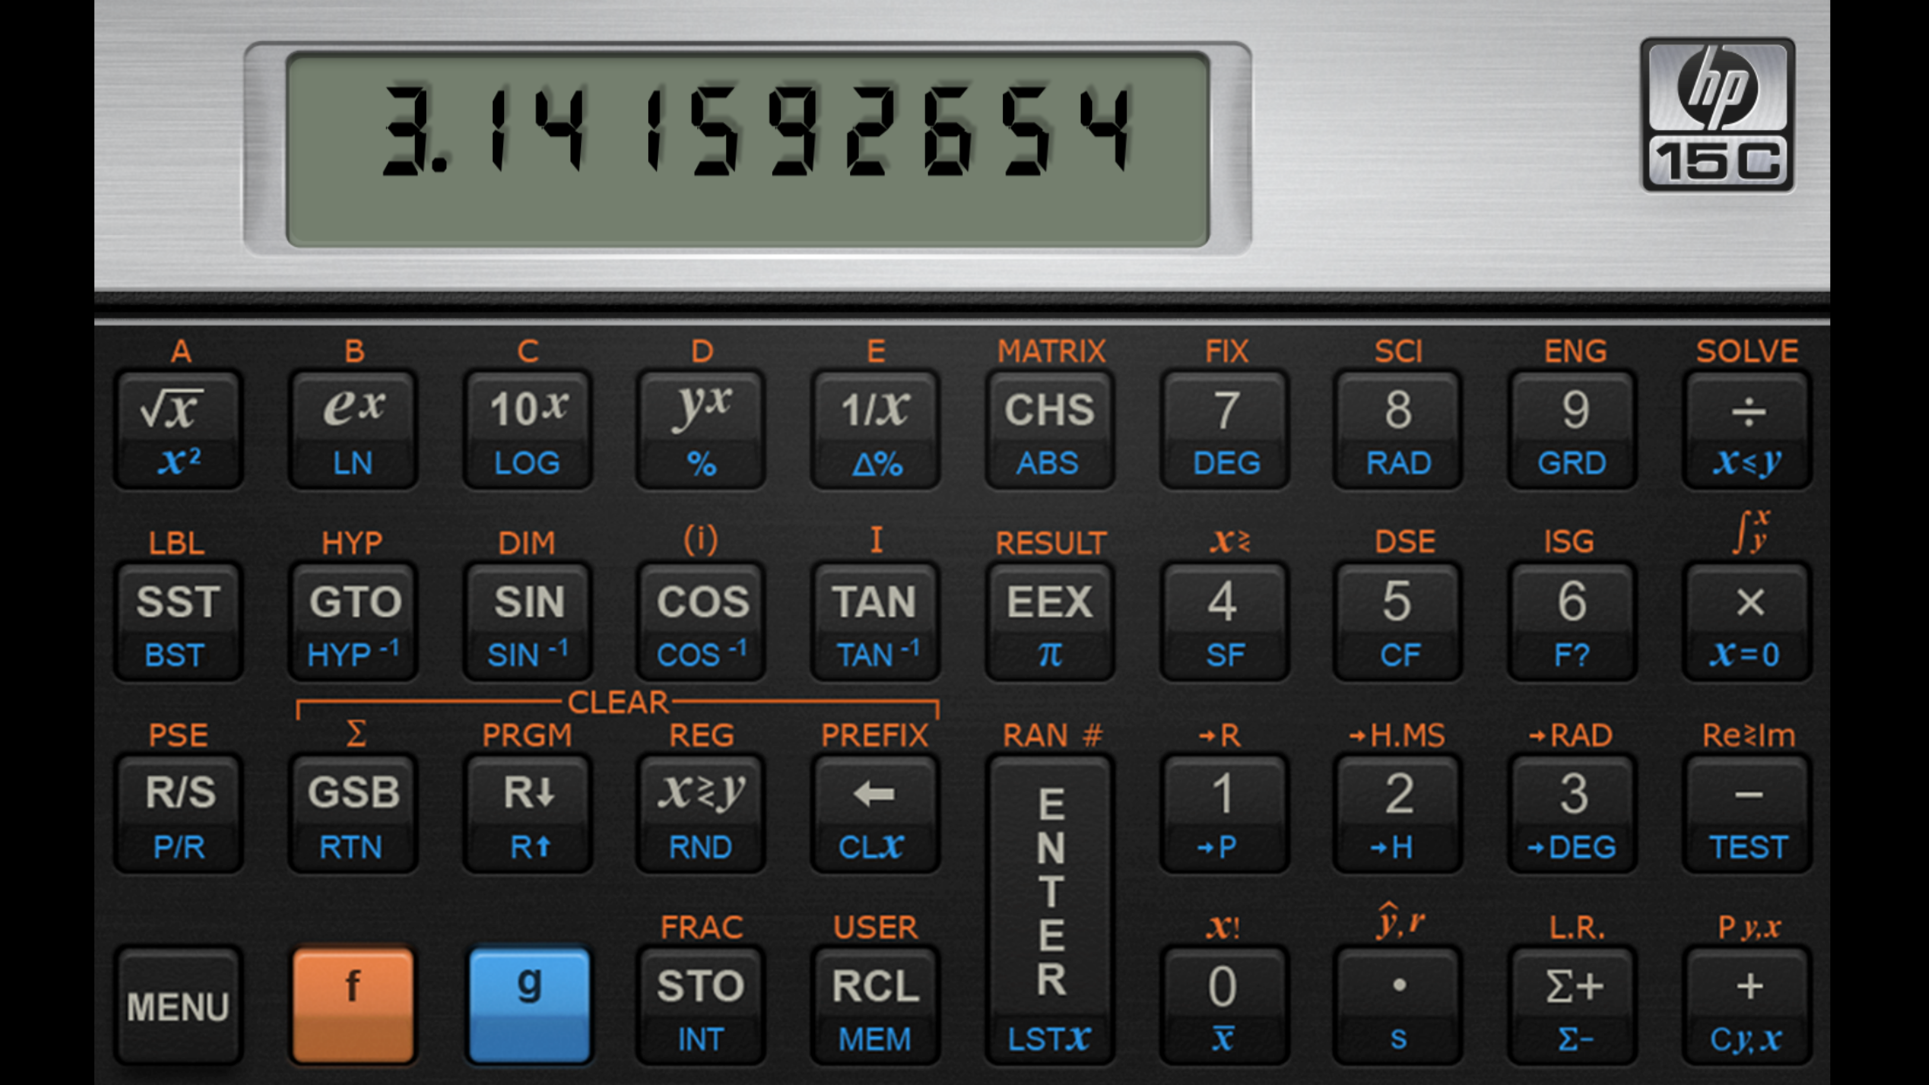 HP 15C Calculator iosBusinessappapps Calculator, Sin